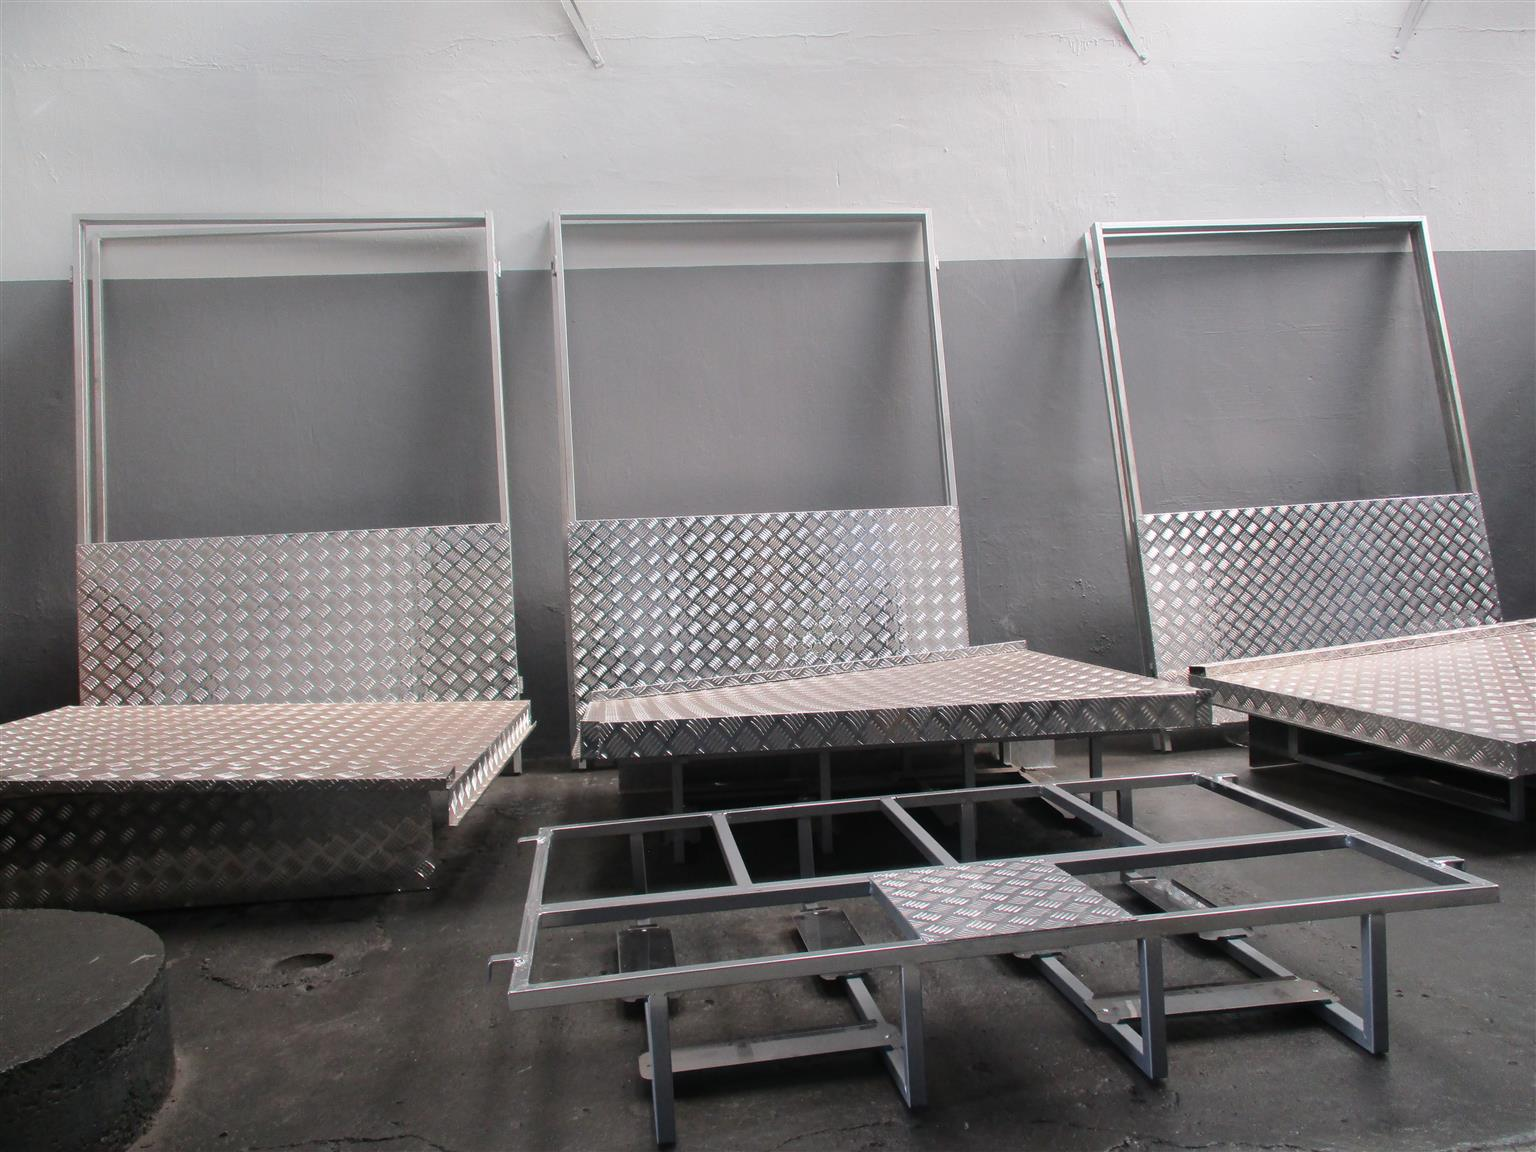 PORTABLE FOOD WARMERS STANDS FOR SALE